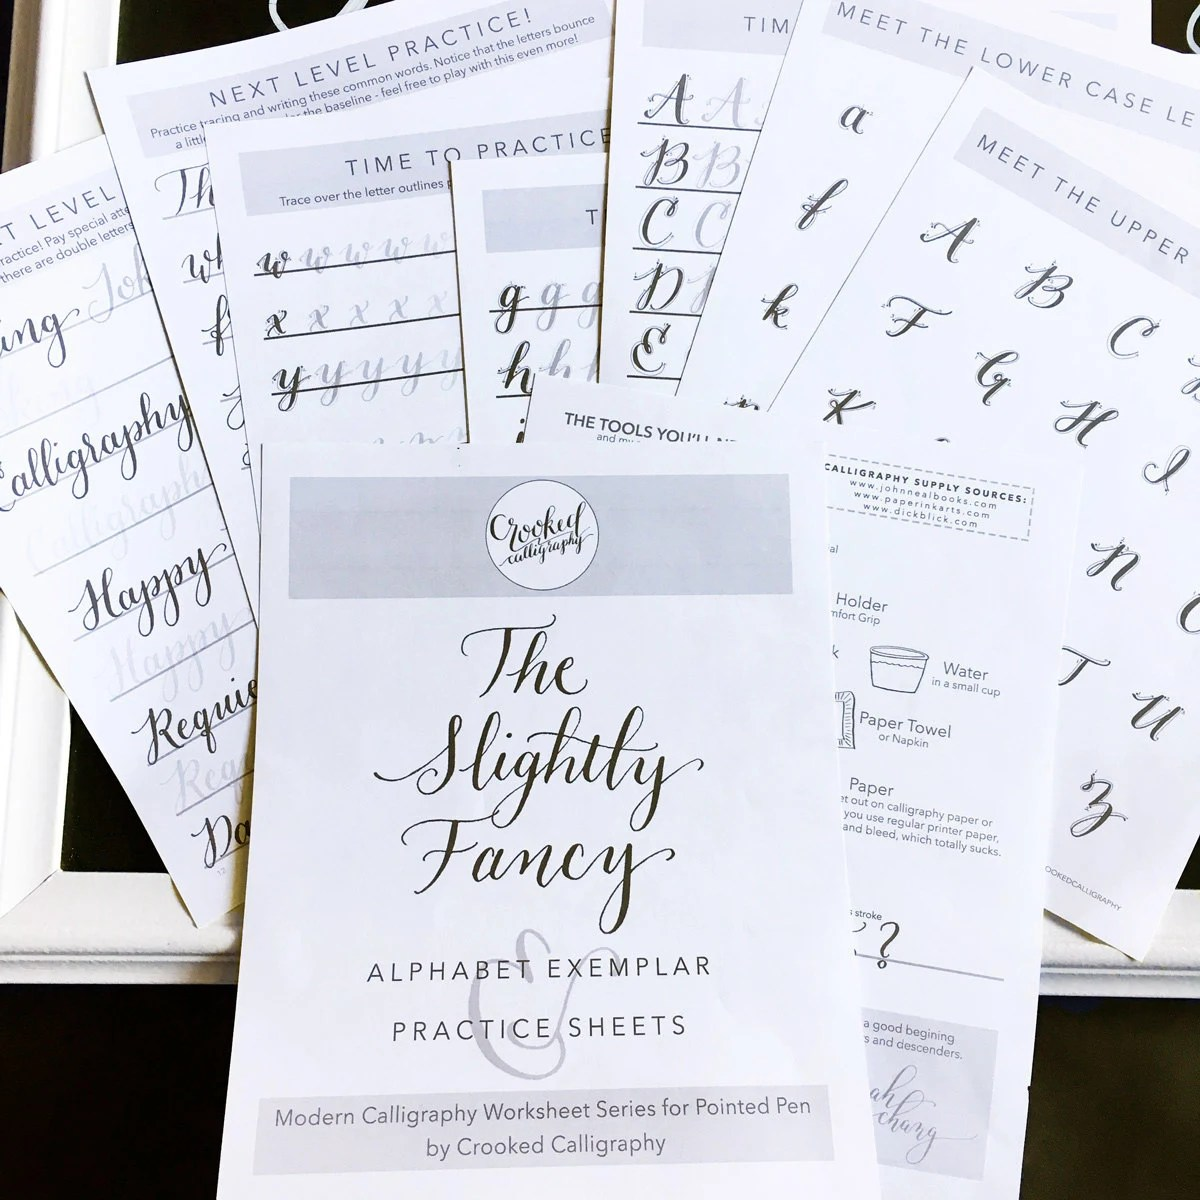 Modern Calligraphy Worksheet Printable Download Slightly